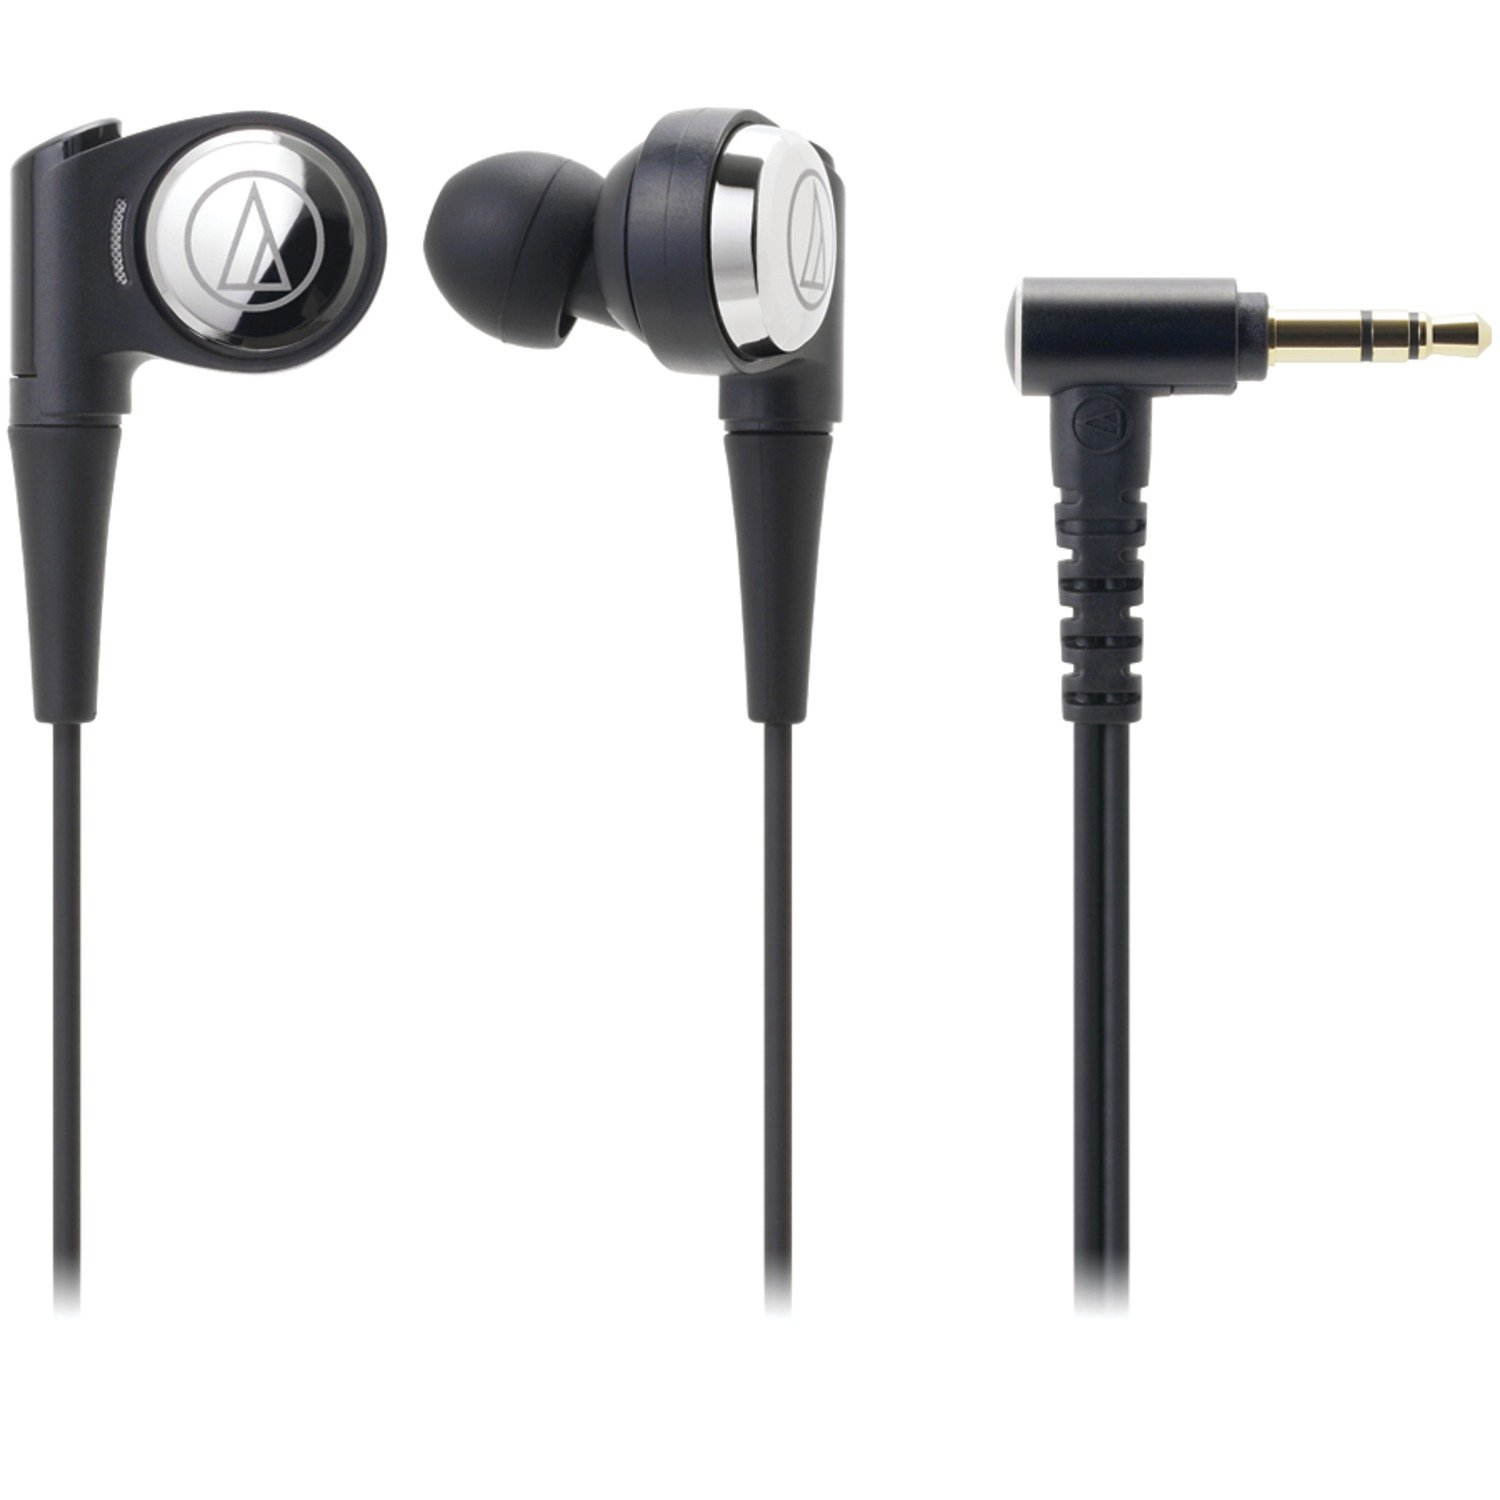 Audio Technica Ath Ckr10 Sonicpro In Ear Headphones Earphone Solid Bass Cks1100is Home Theater